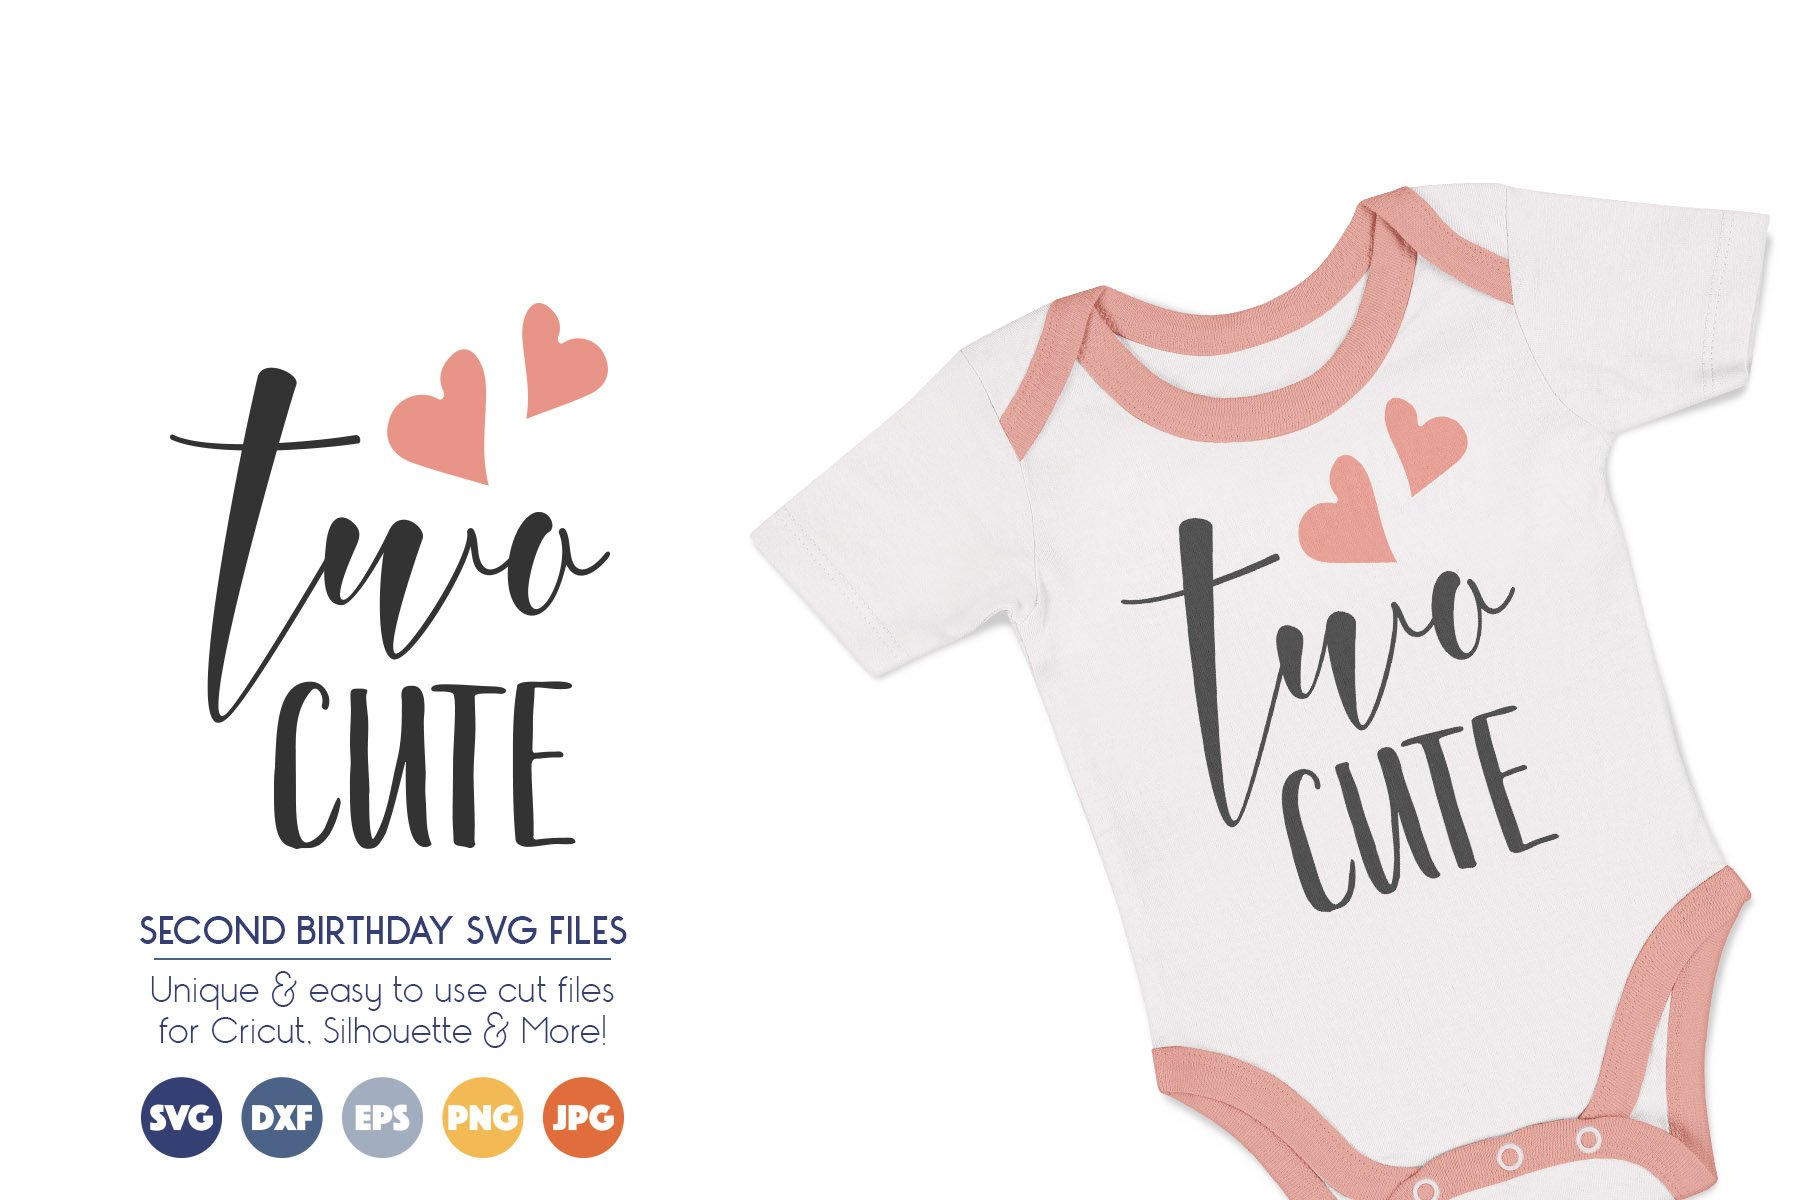 Second Birthday SVG Cut Files - Two Cute example image 1